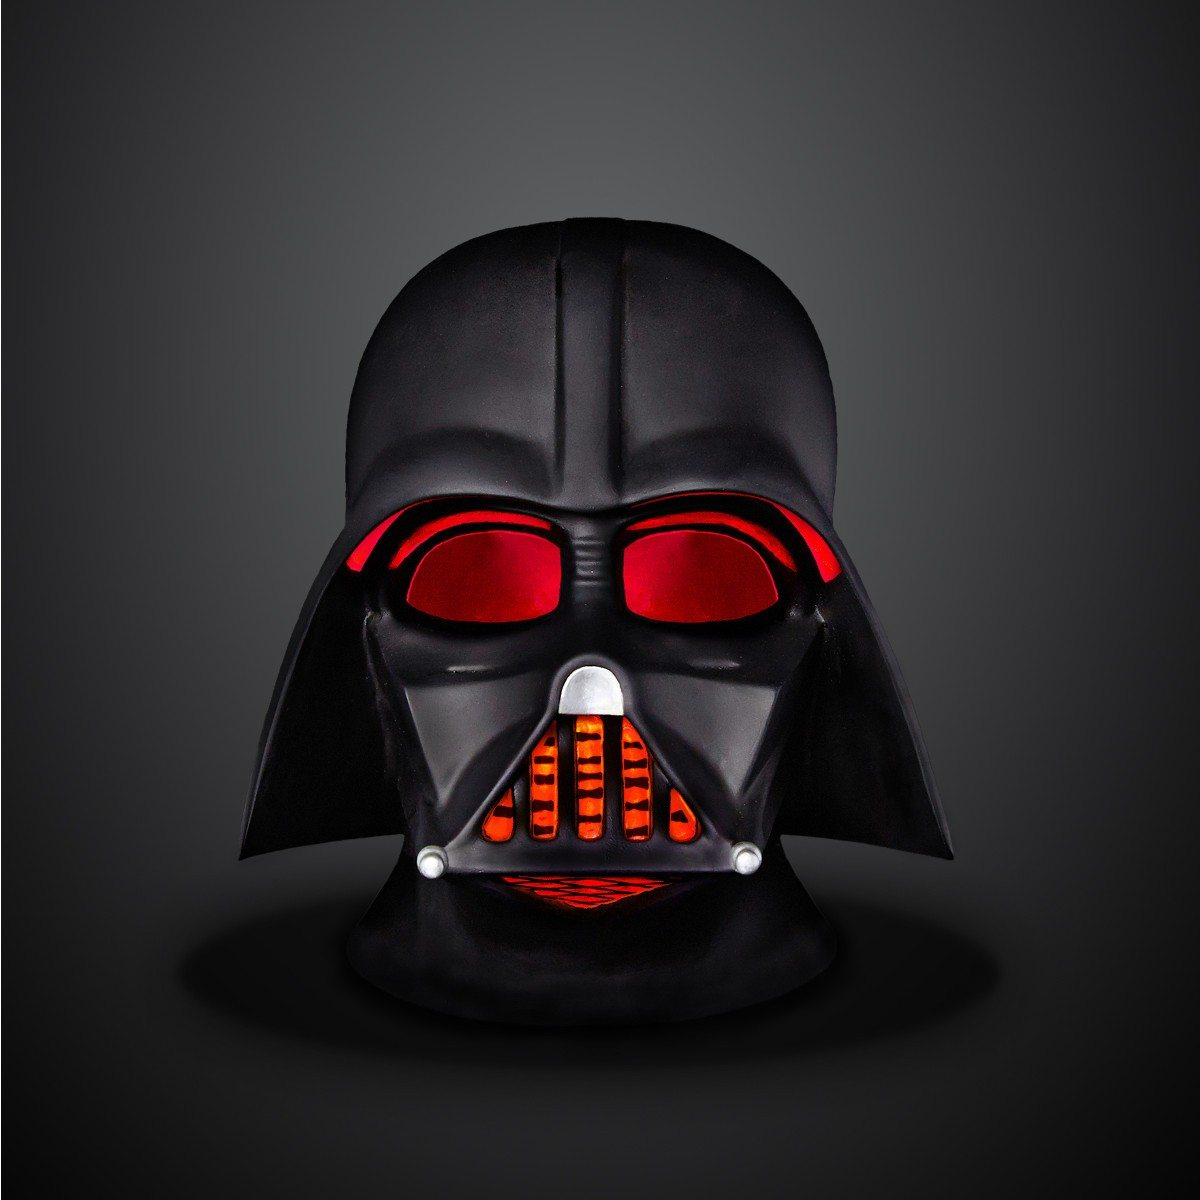 lampe star wars dark side cadeau pour fan. Black Bedroom Furniture Sets. Home Design Ideas